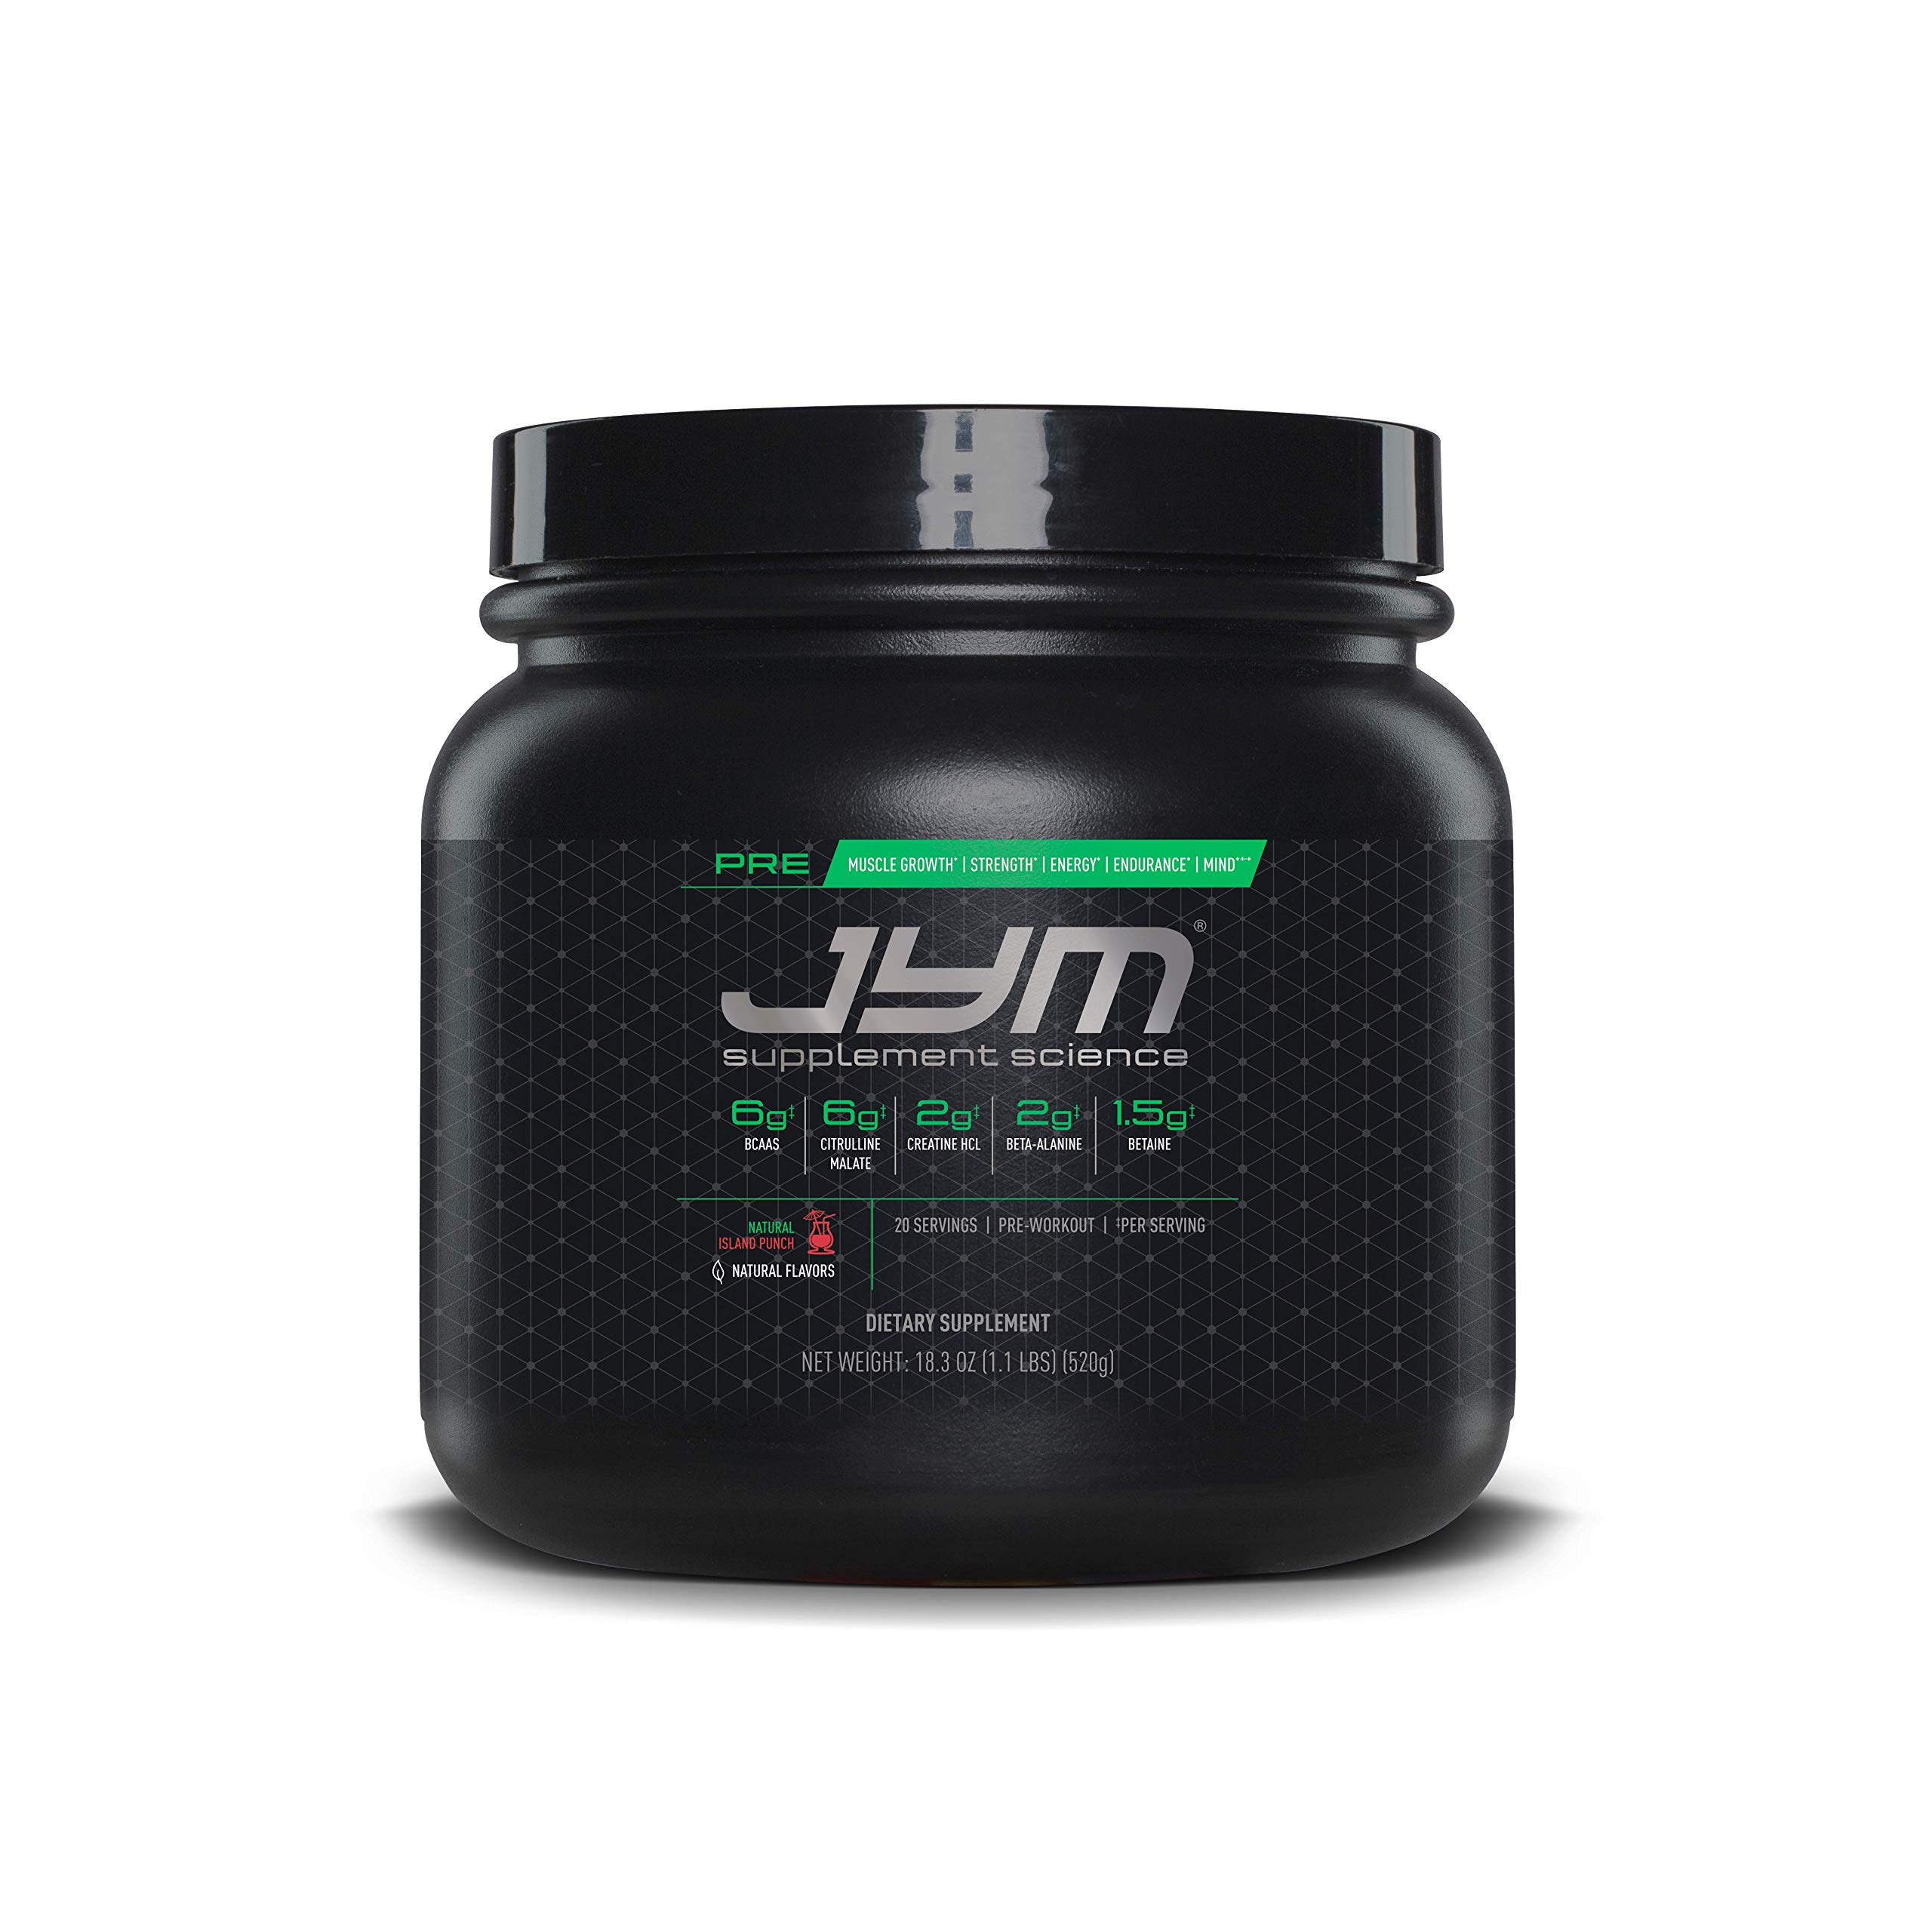 JYM Supplement Science, PRE JYM, Natural Island Punch, Pre-Workout with BCAA's, Creatine HCl, Citrulline Malate, Beta-alanine, Betaine, Alpha-GPC, Beet Root Extract and more, 20 Servings by JYM Supplement Science